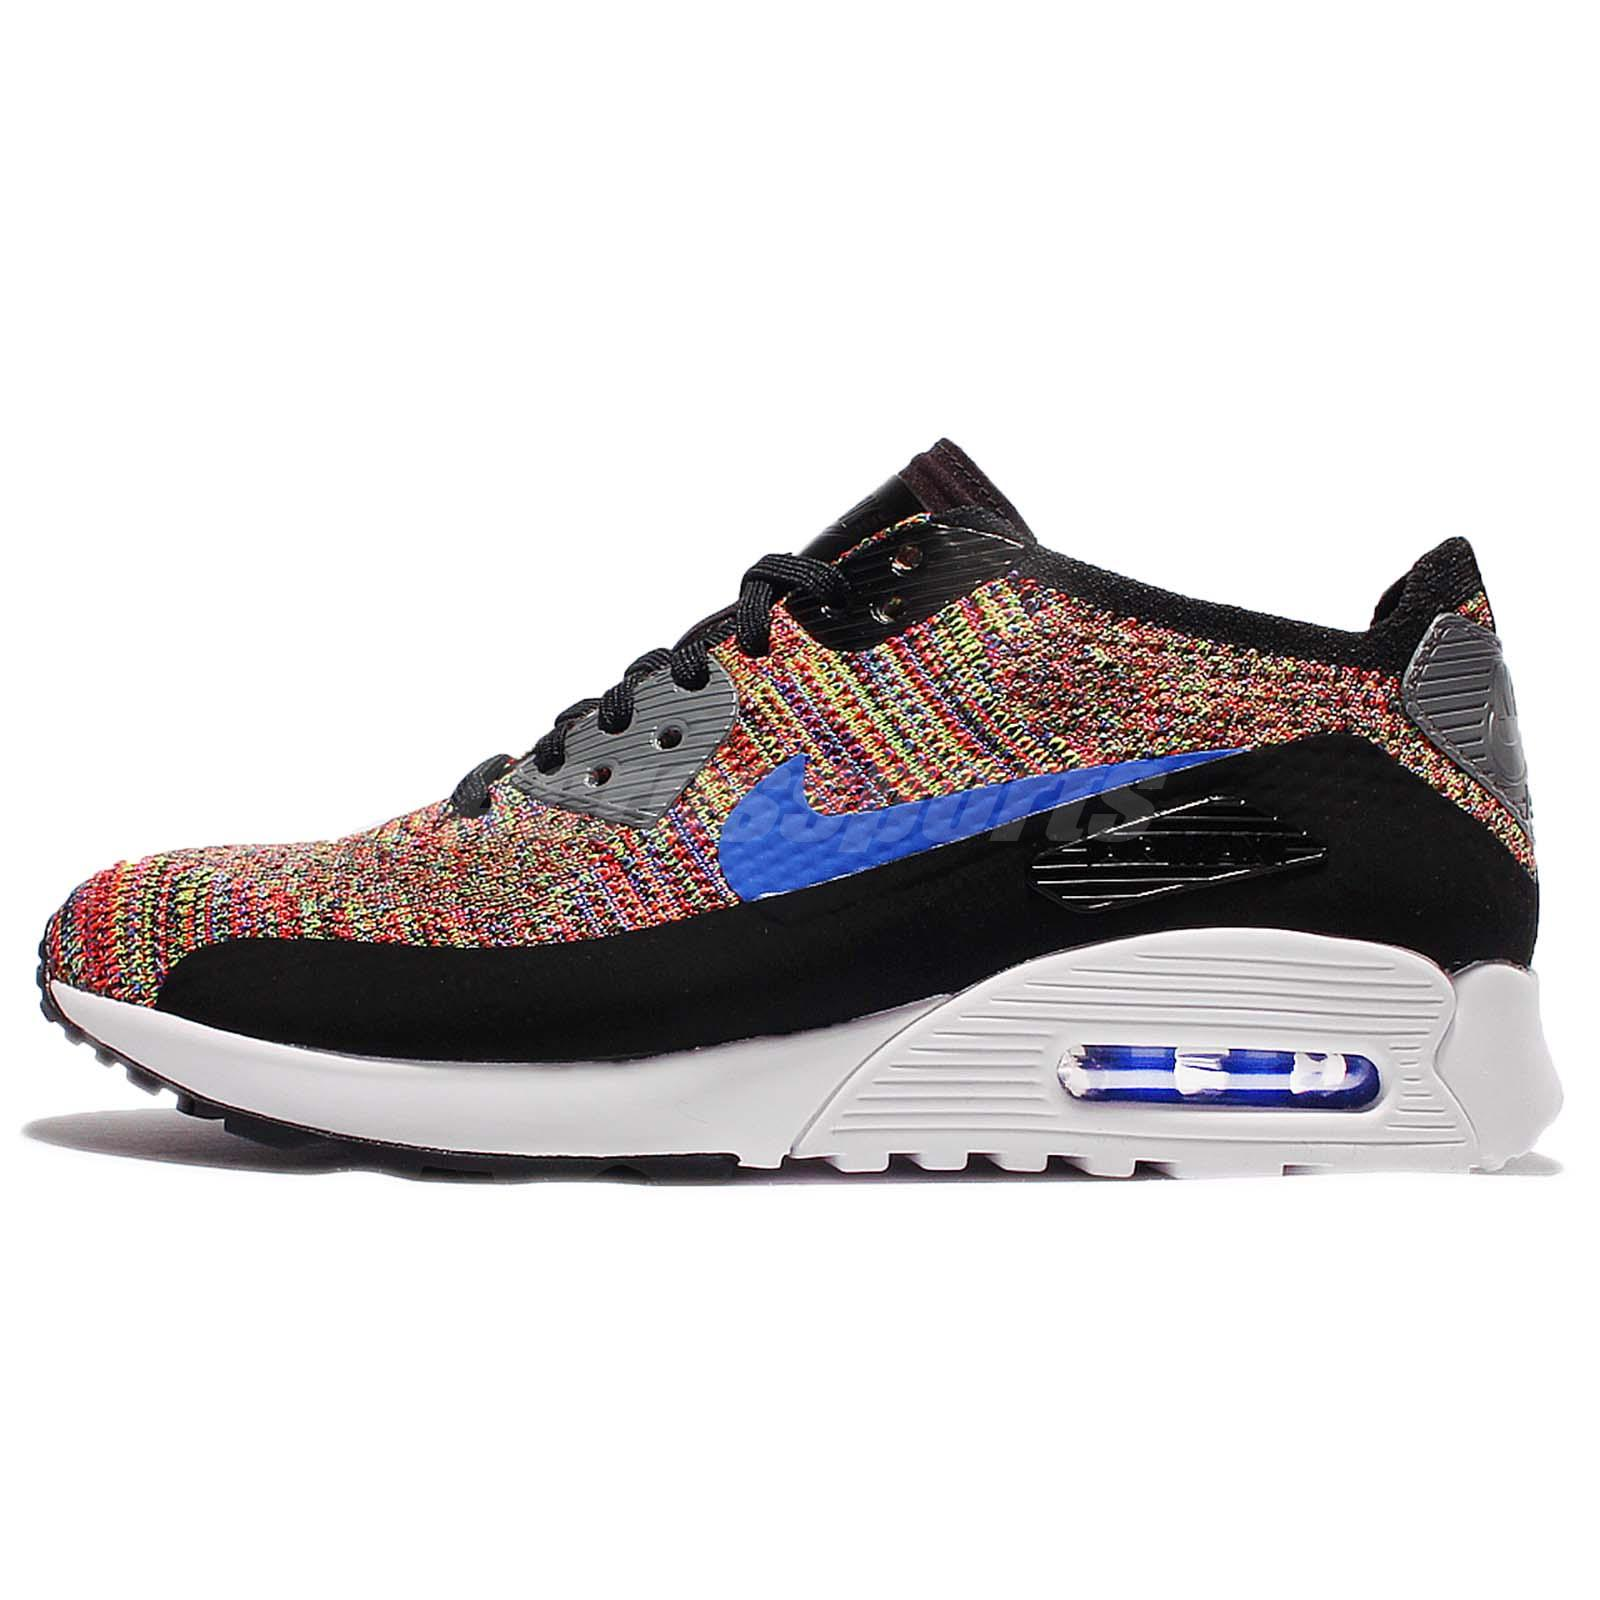 6b7ede52a05c Wmns Nike Air Max 90 Ultra 2.0 Flyknit Multi-Color Rainbow Women Shoe  881109-001